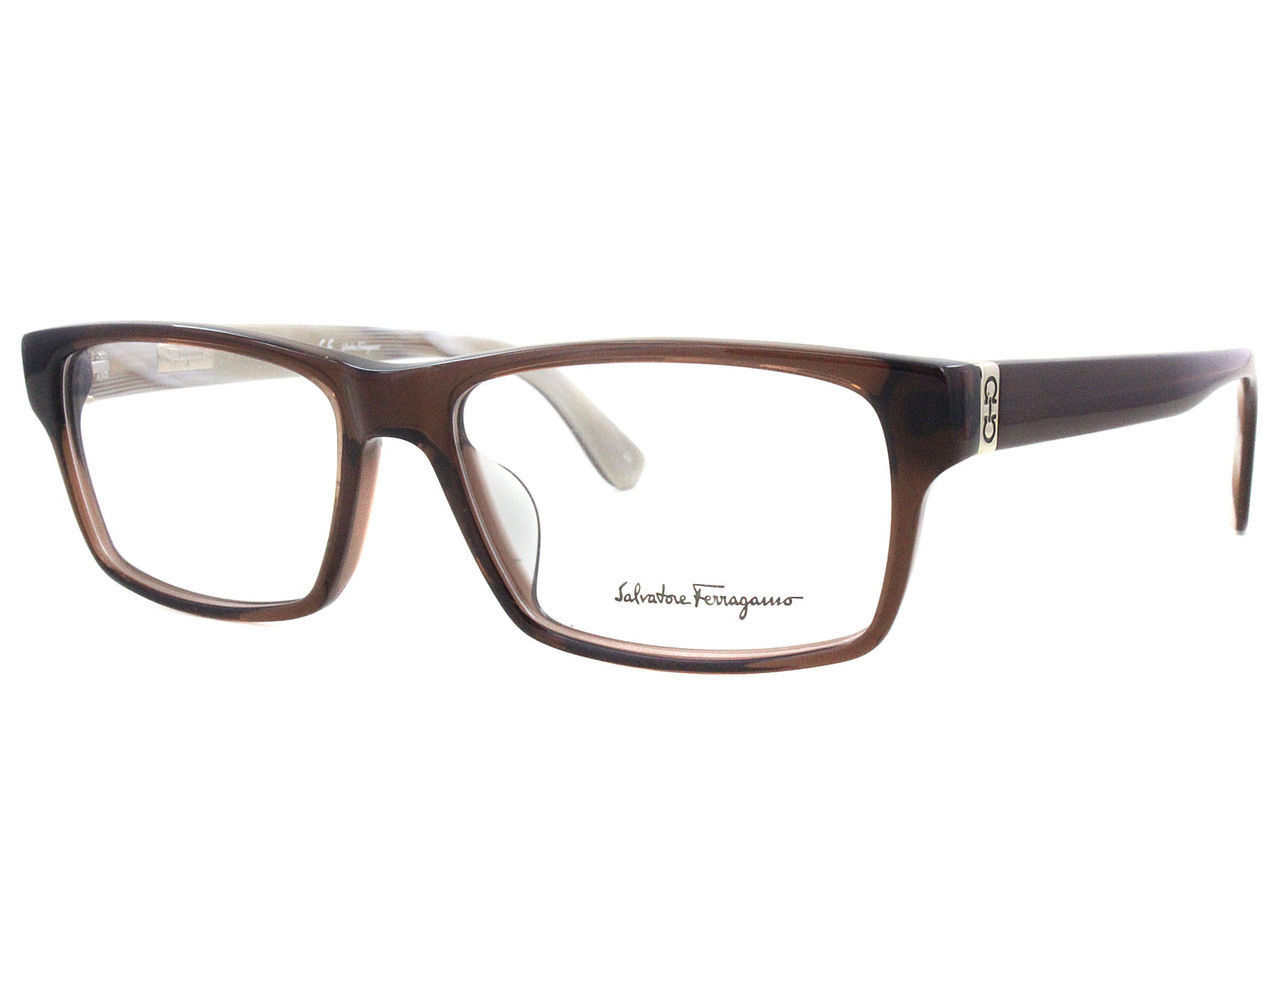 640537c9d0bf Ferragamo Eyeglasses 2640 Brown 210 Men s and 50 similar items